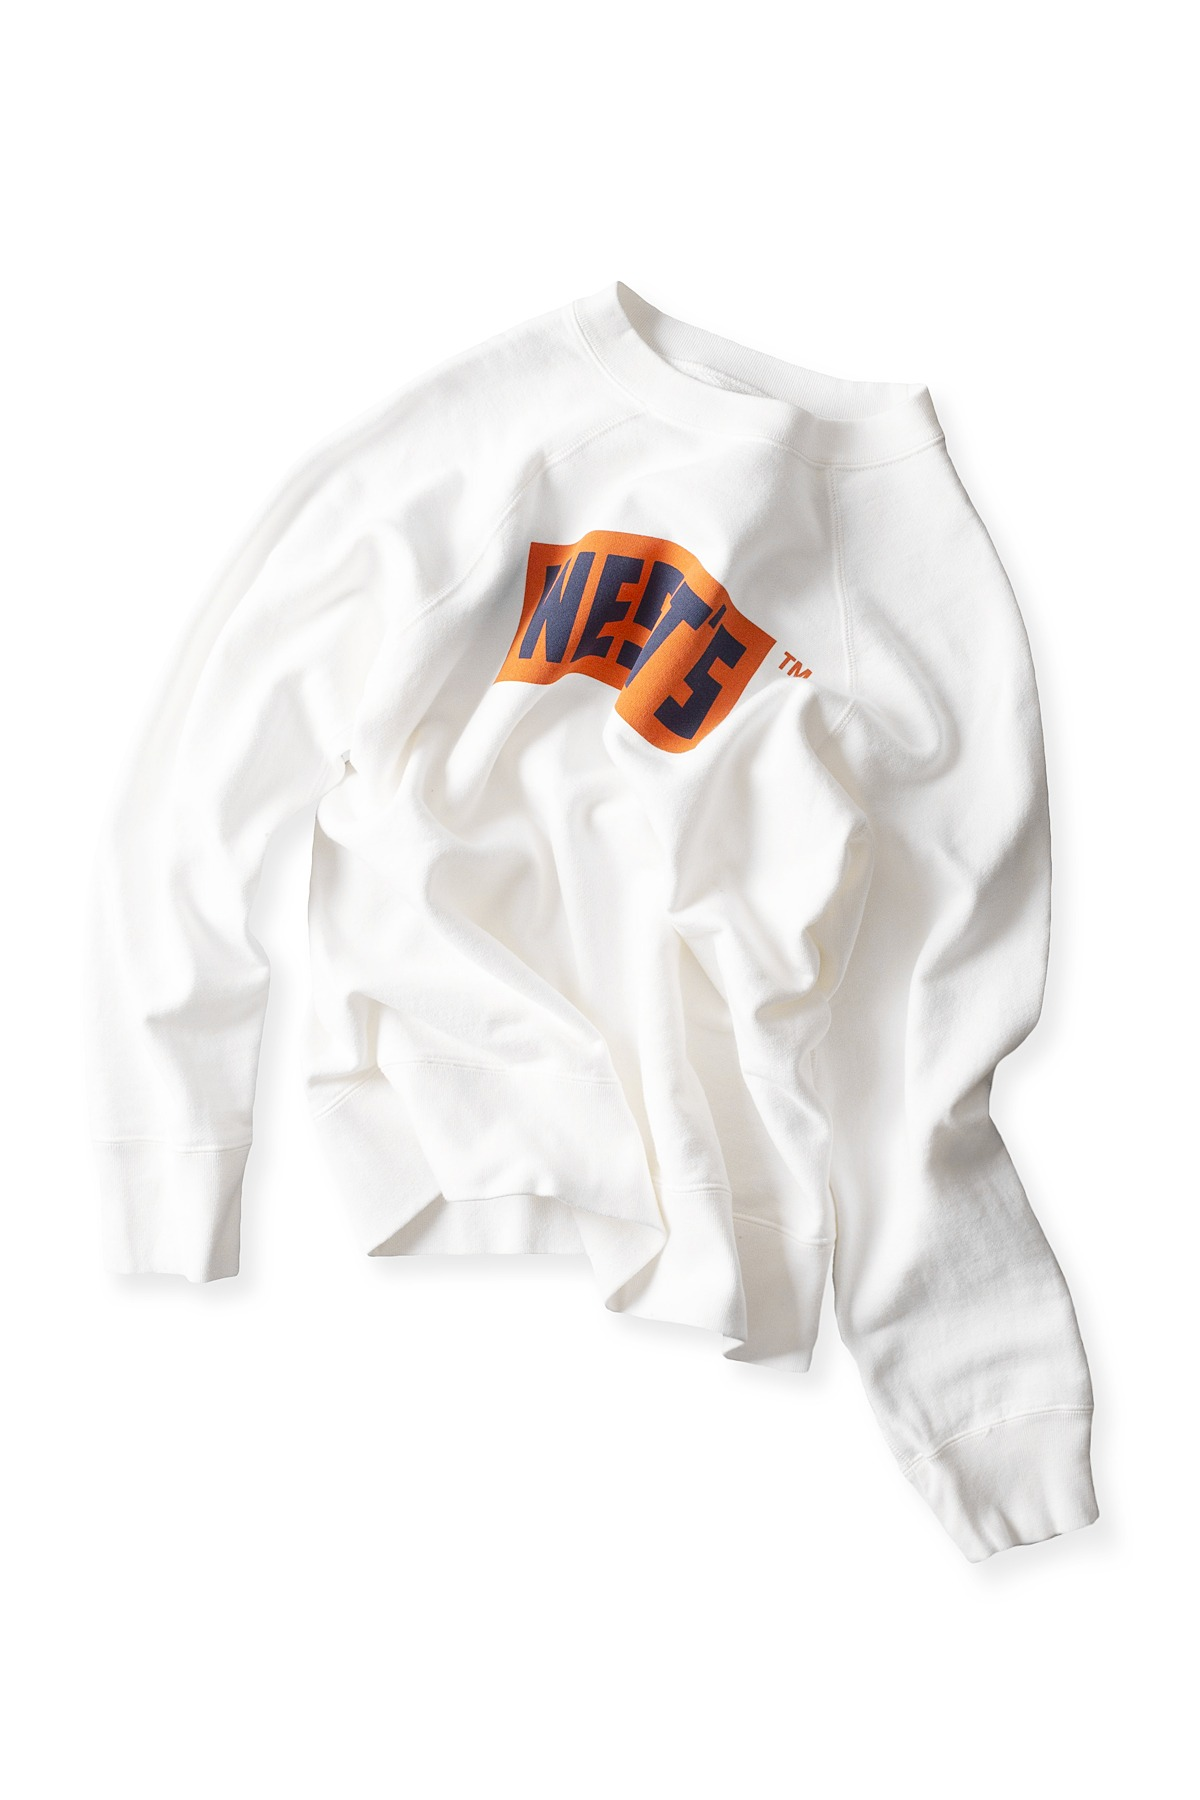 WESTOVERALLS : Wests Crew Sweat (Orange)